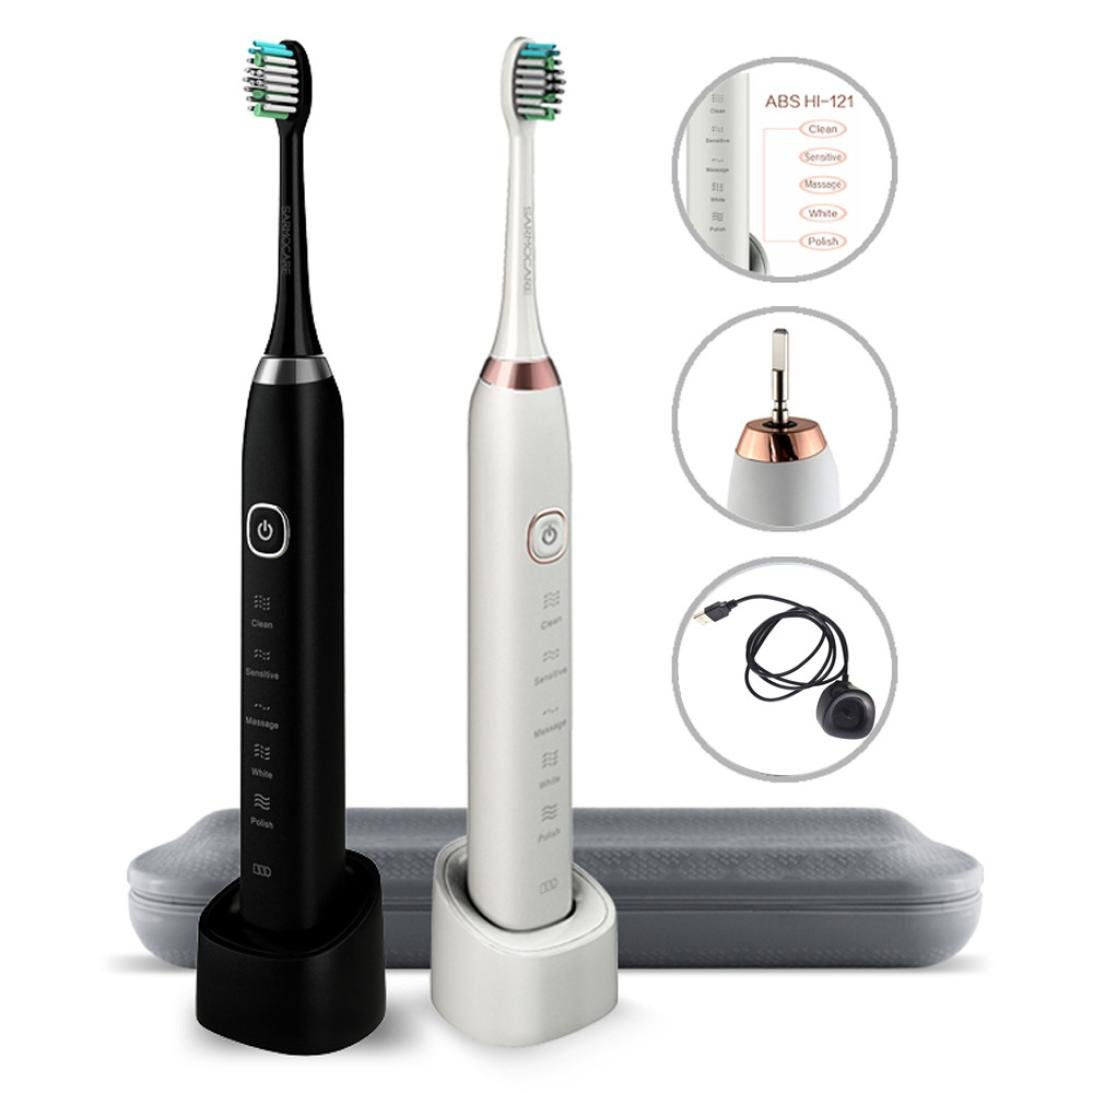 Xindda High Powered Wireless Sonic Electric Rechargeable Toothbrush with Automatic Timer for Business Travel and Home, 5 brushing modes & IPX7 waterproof design - S100 (White)